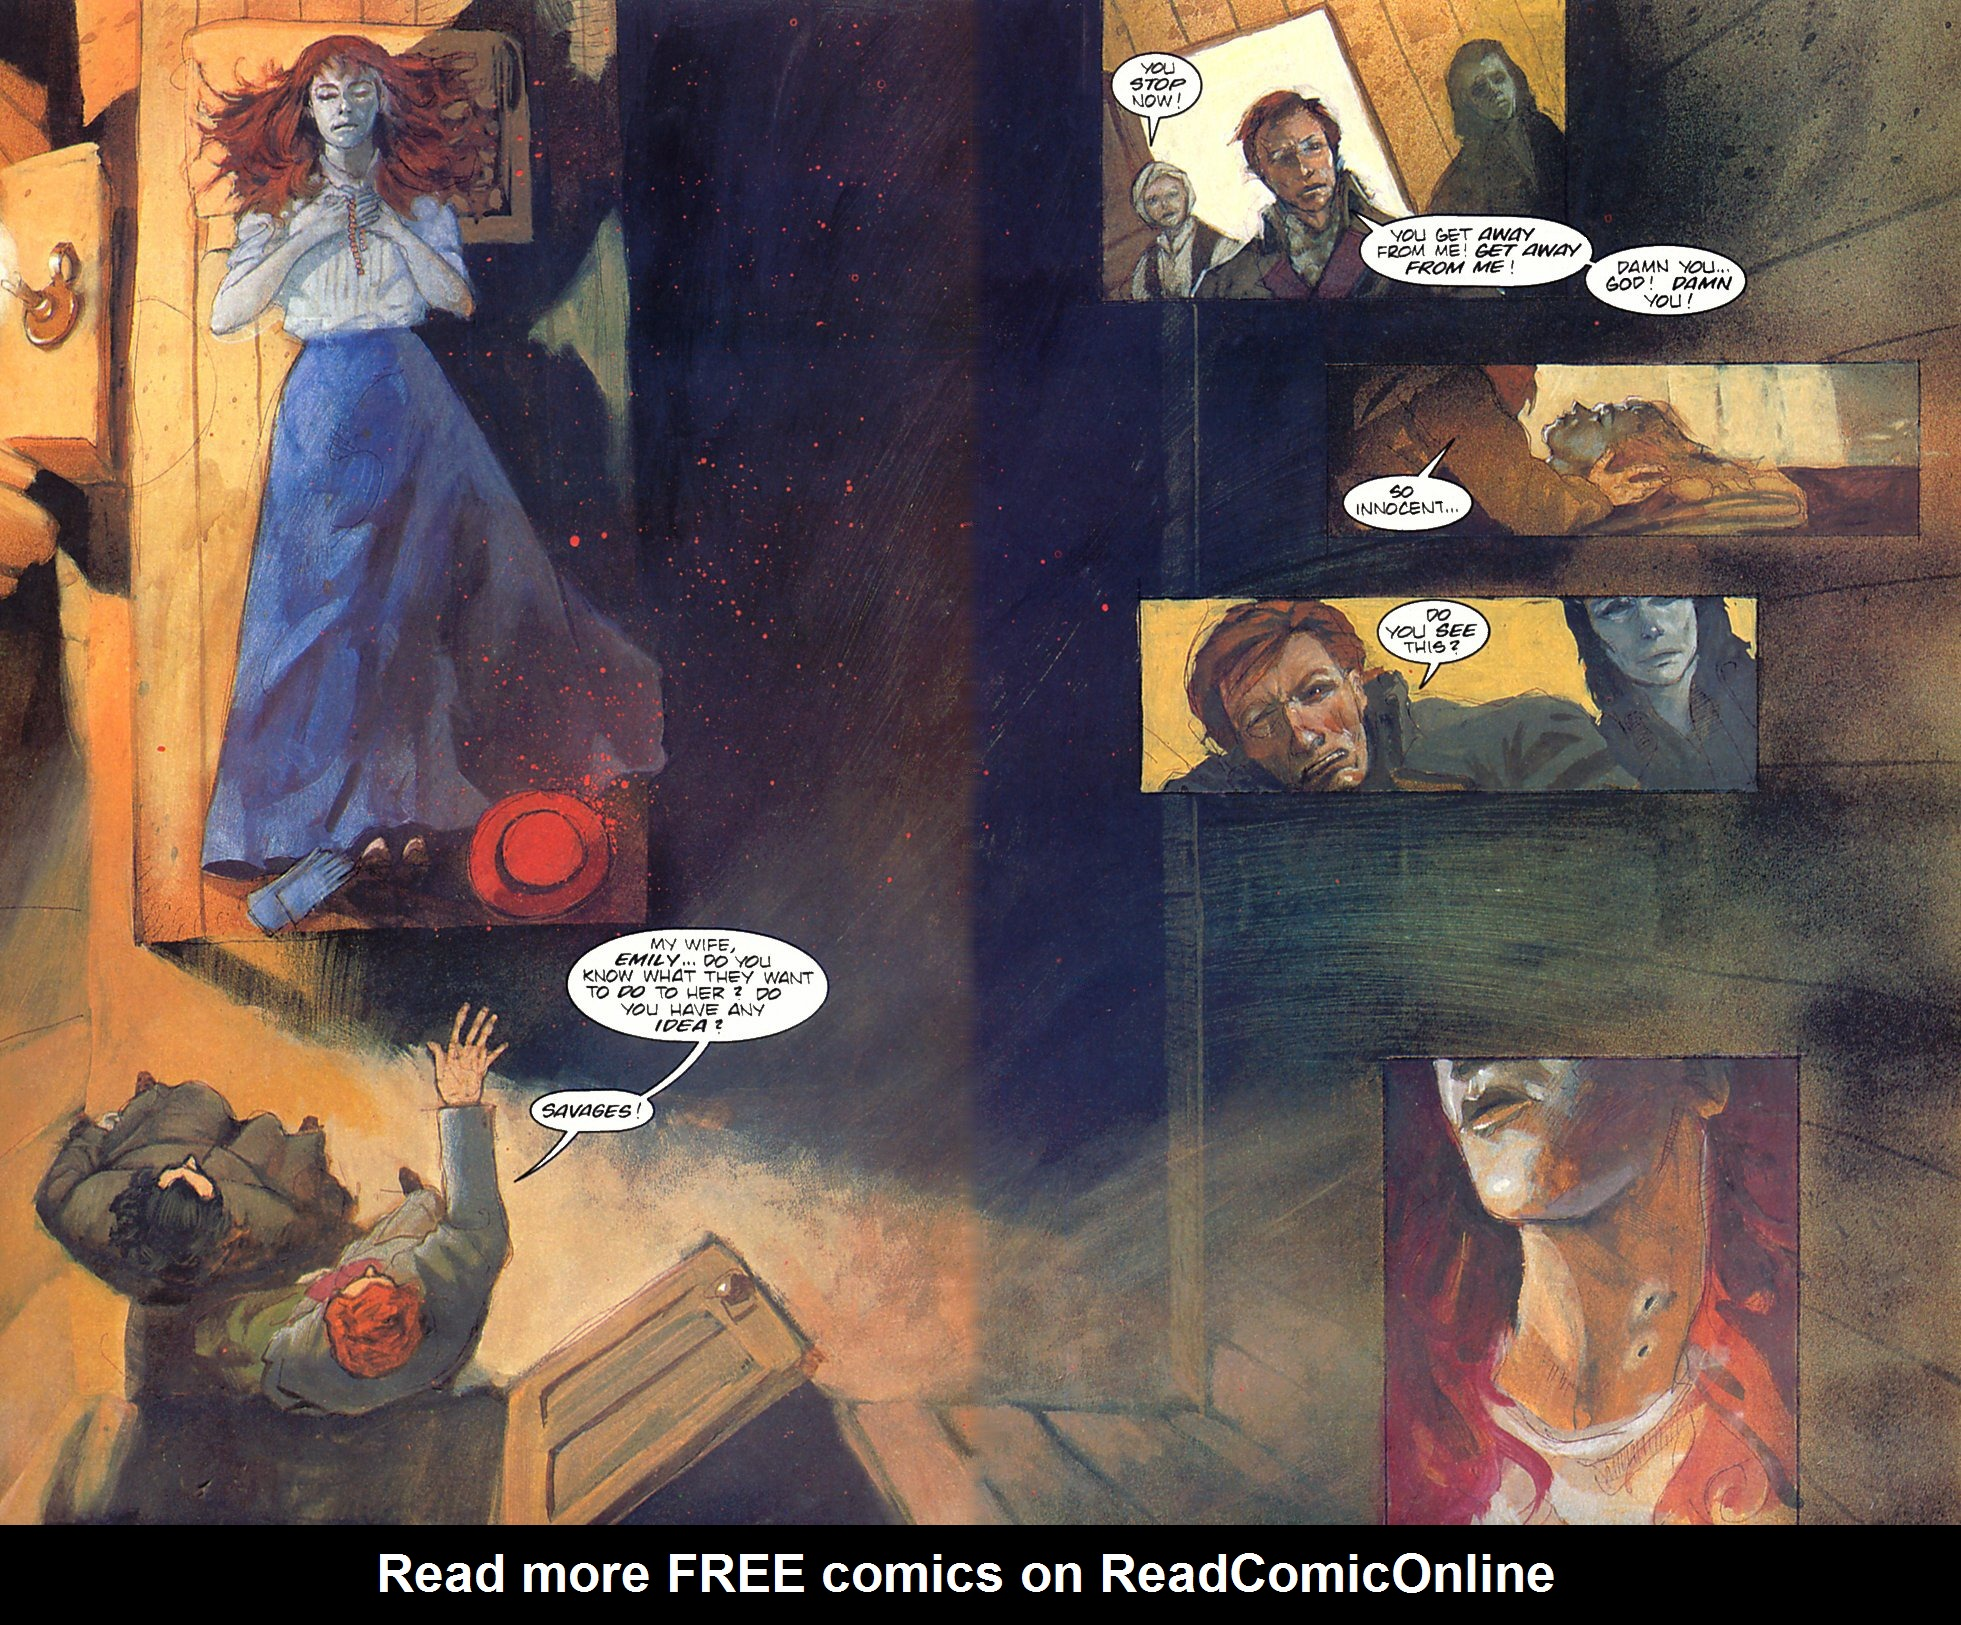 Read online Anne Rice's Interview with the Vampire comic -  Issue #6 - 26